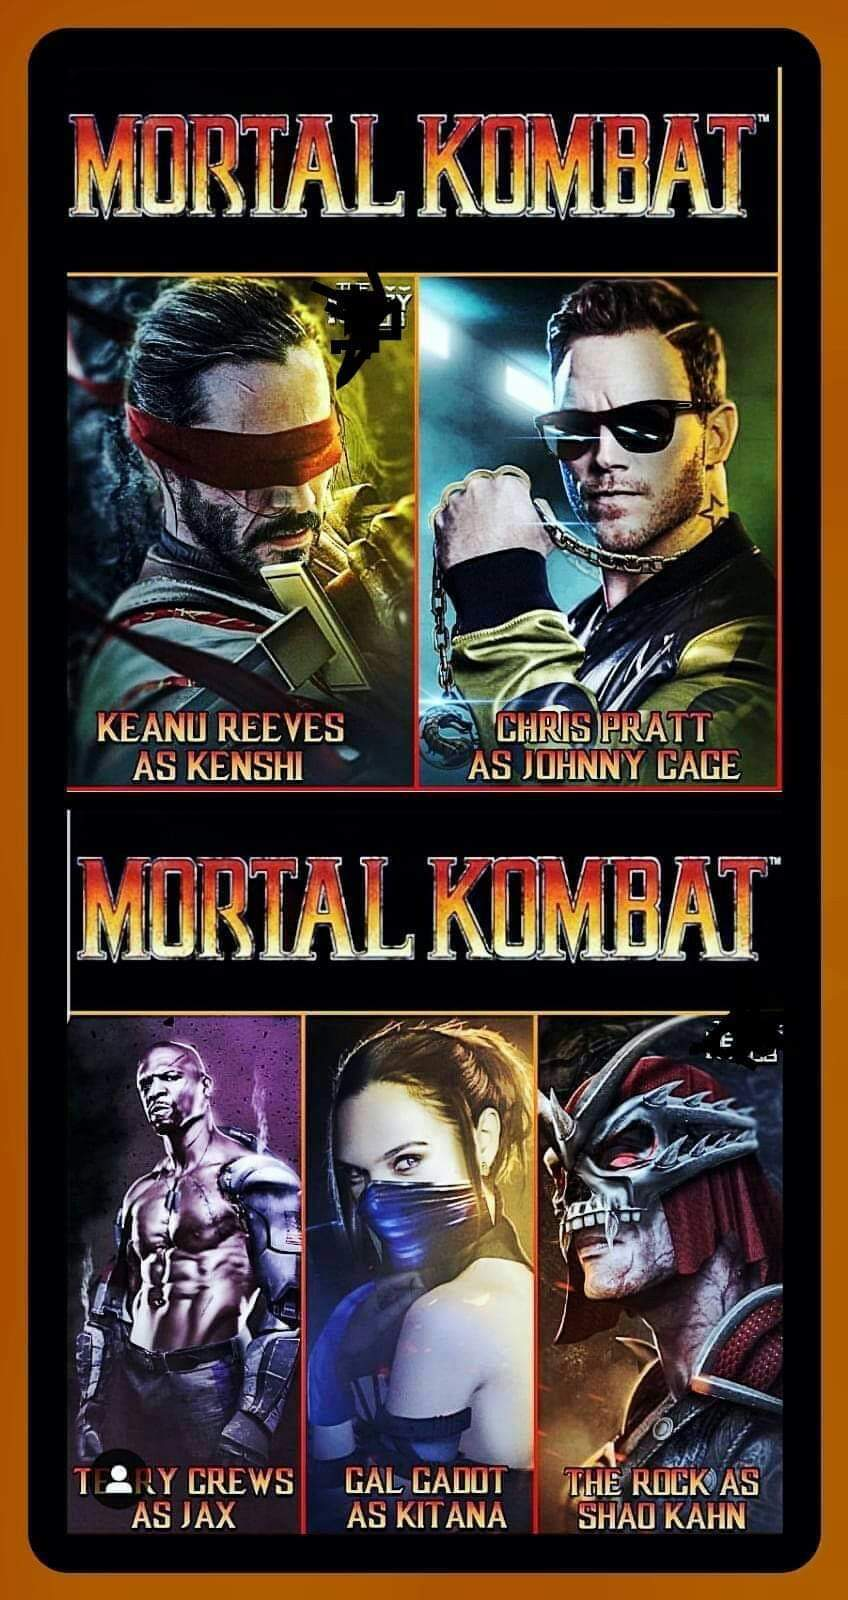 Fan-Made Mortal Kombat Art Casts Keanu Reeves as Kenshi and